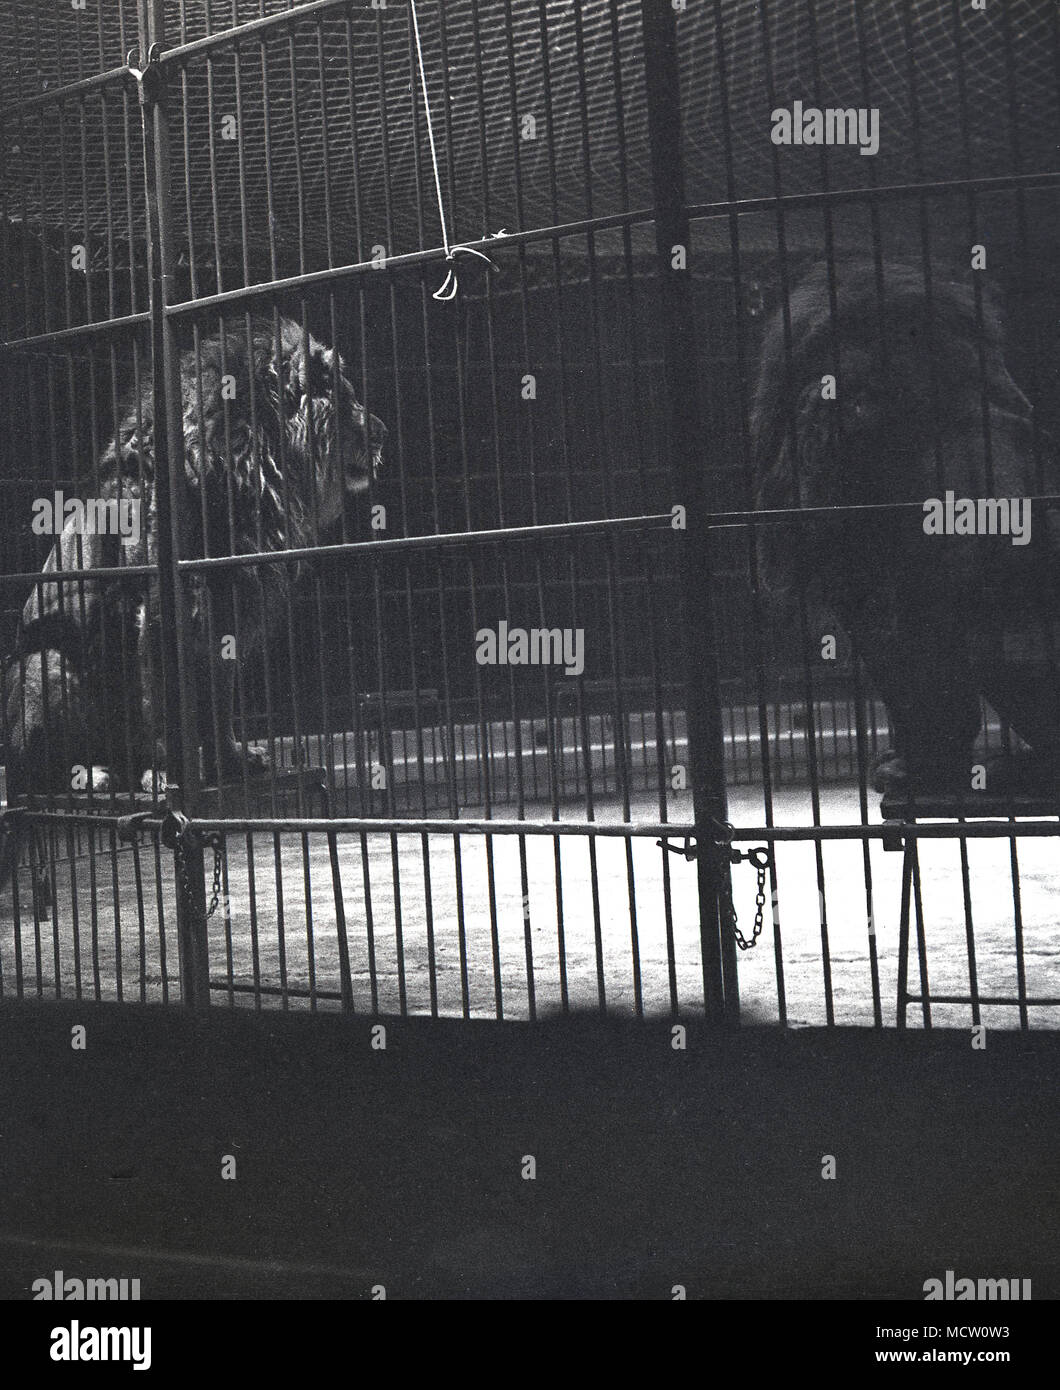 1950s, historical picture of 'big cats', Lions, sitting on stools inside a steel barred caged ring performing at the circus at Belle Vue, Manchester, England, UK. The circus was a poular attraction there in its day and ran for over 50 years.  Also at Belle Vue was a zoo and amusement park and a stadium which hosted speedway events. - Stock Image